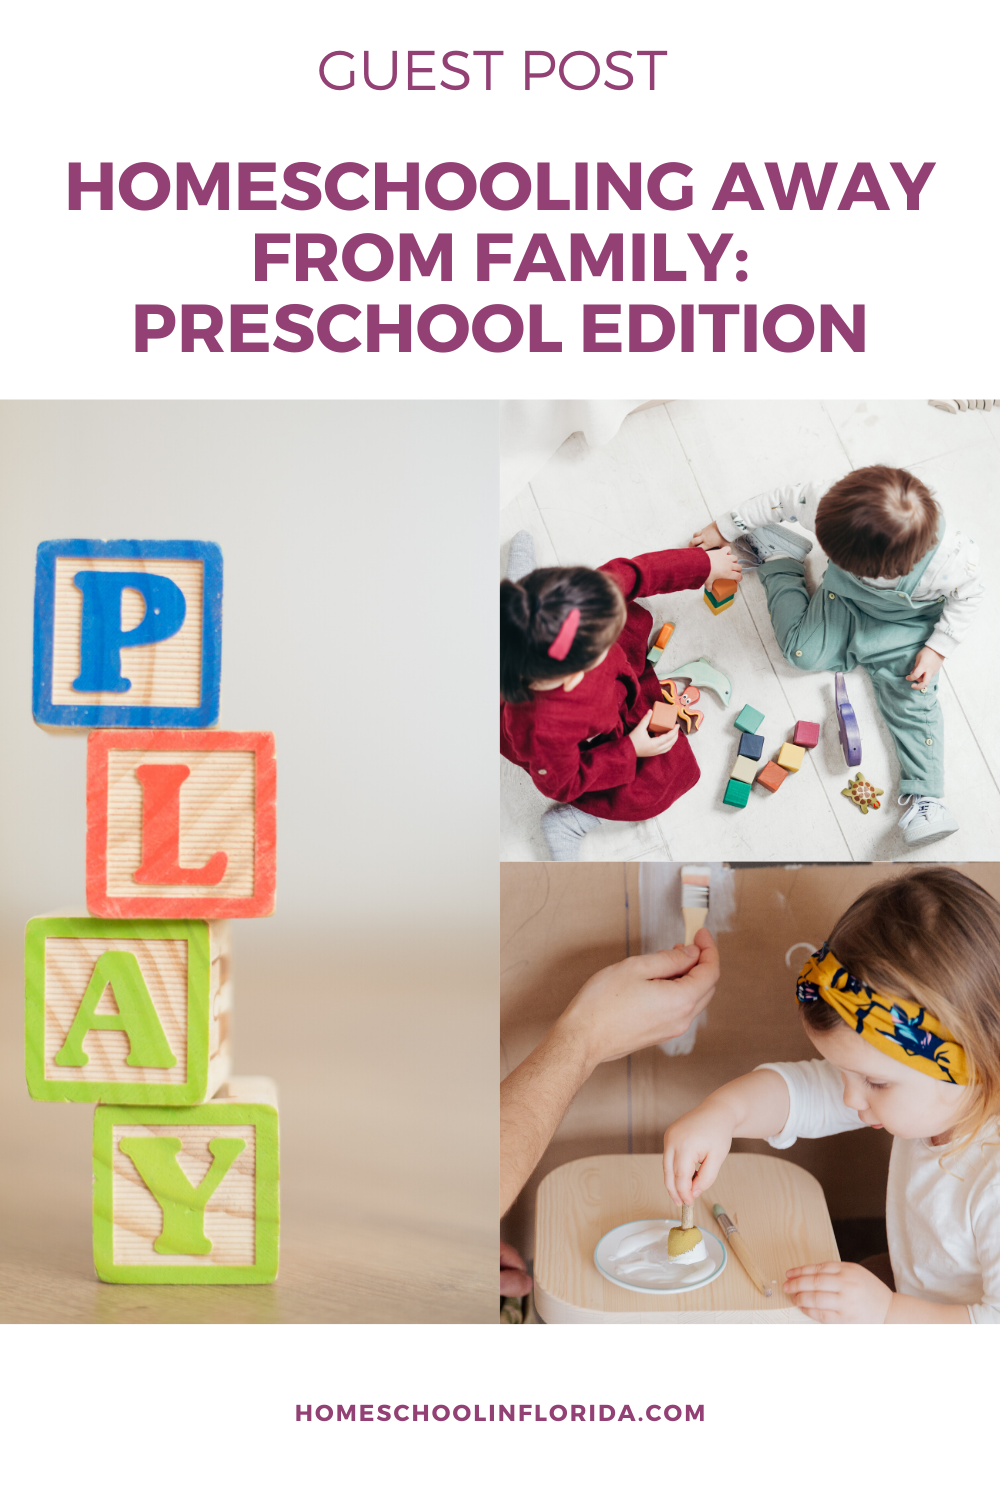 homeschooling away from family: preschool edition